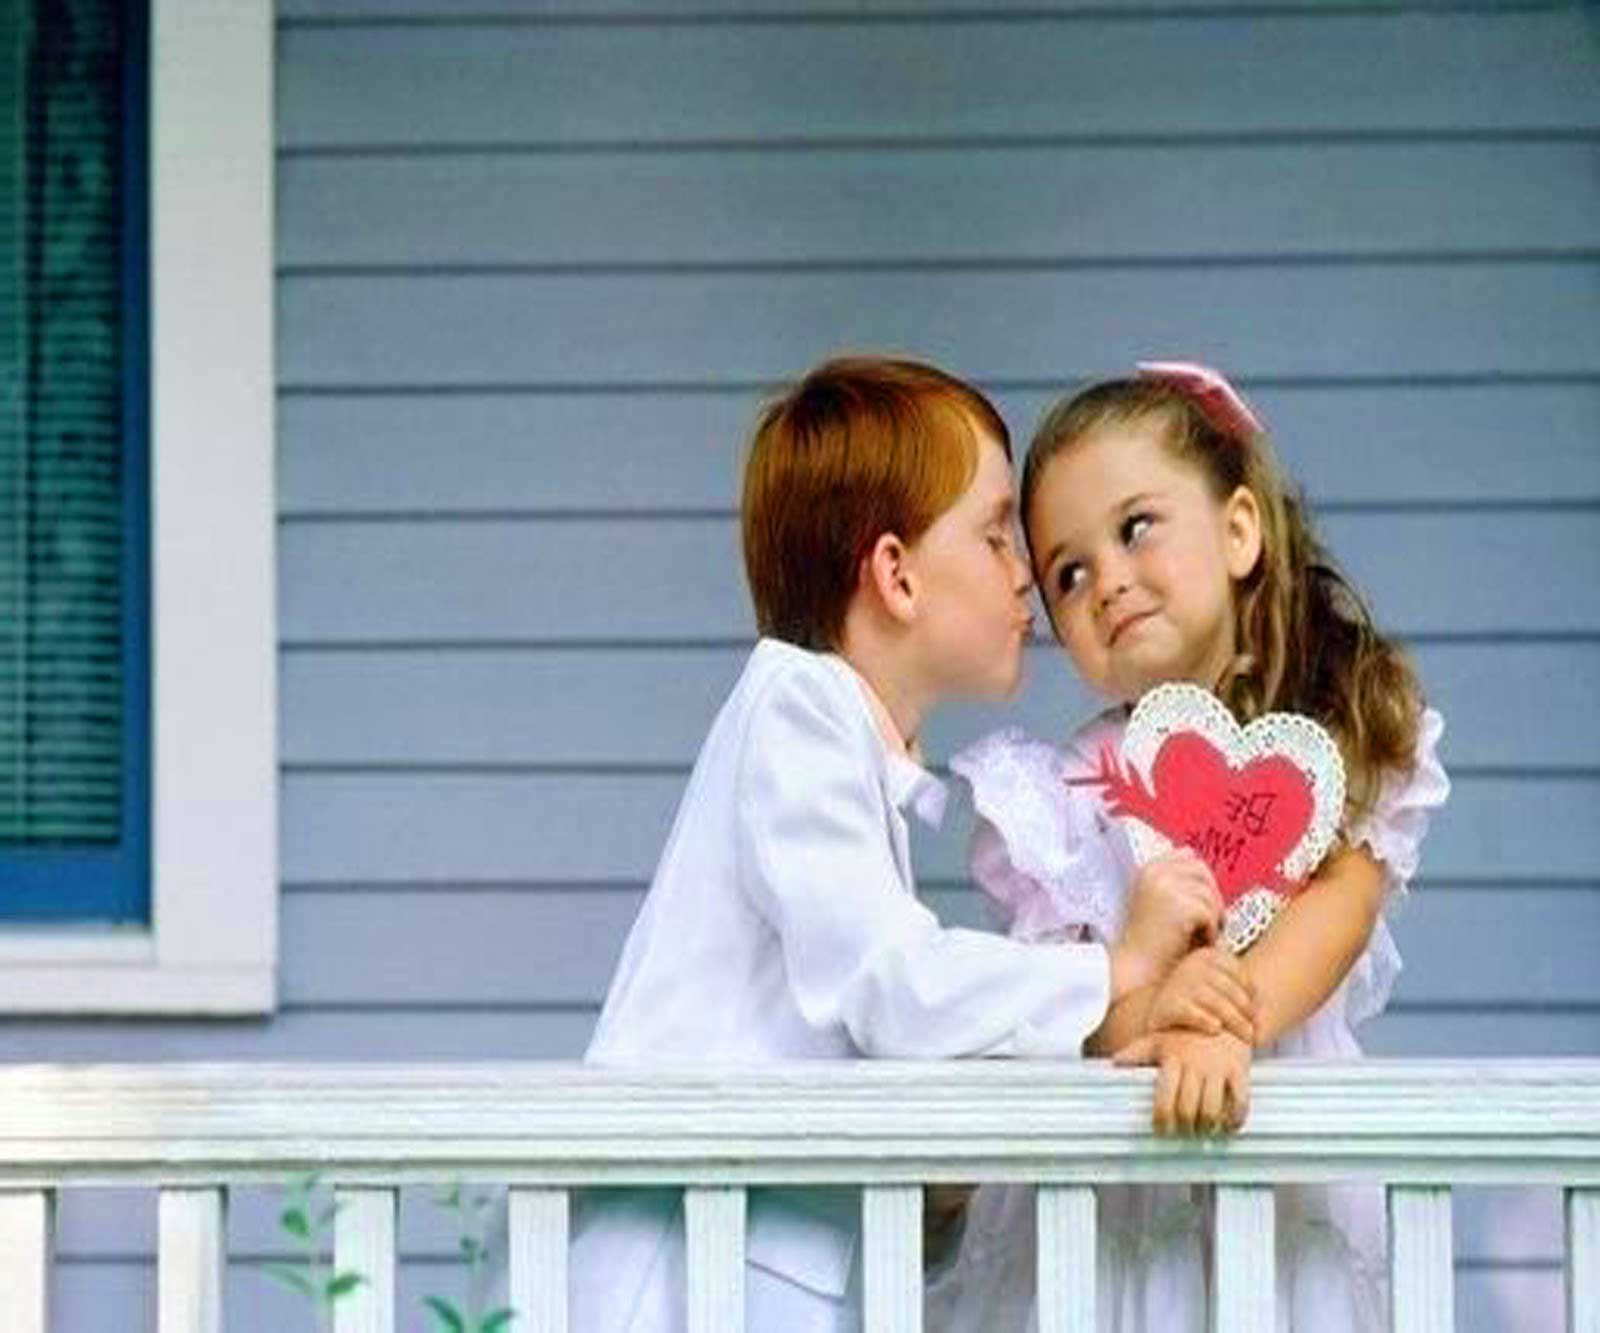 158 Love Couple Images Pictures Photos Pics For Whatsapp